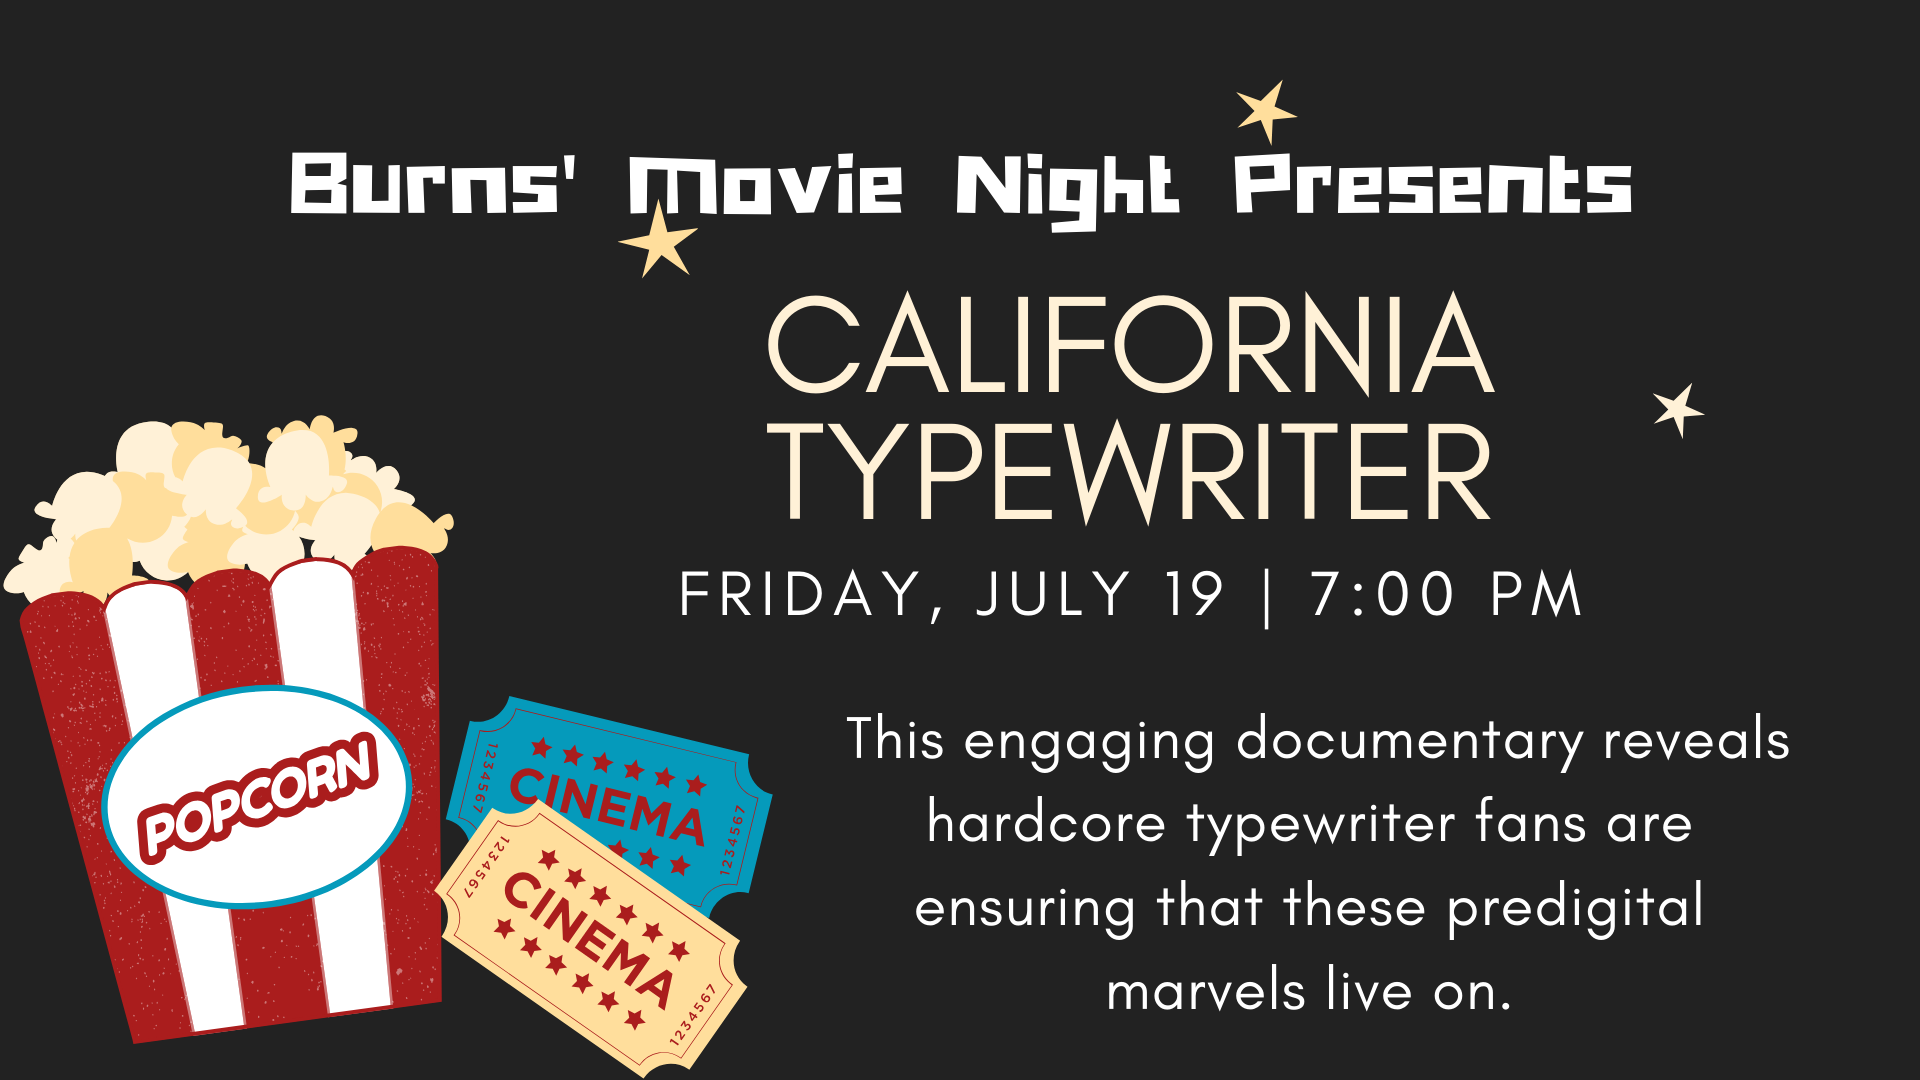 Once a key technology in business and literature, manual typewriters are viewed by most people as quaint 20th century artifacts. But as this engaging documentary reveals, hardcore typewriter fans are ensuring that these predigital marvels live on.